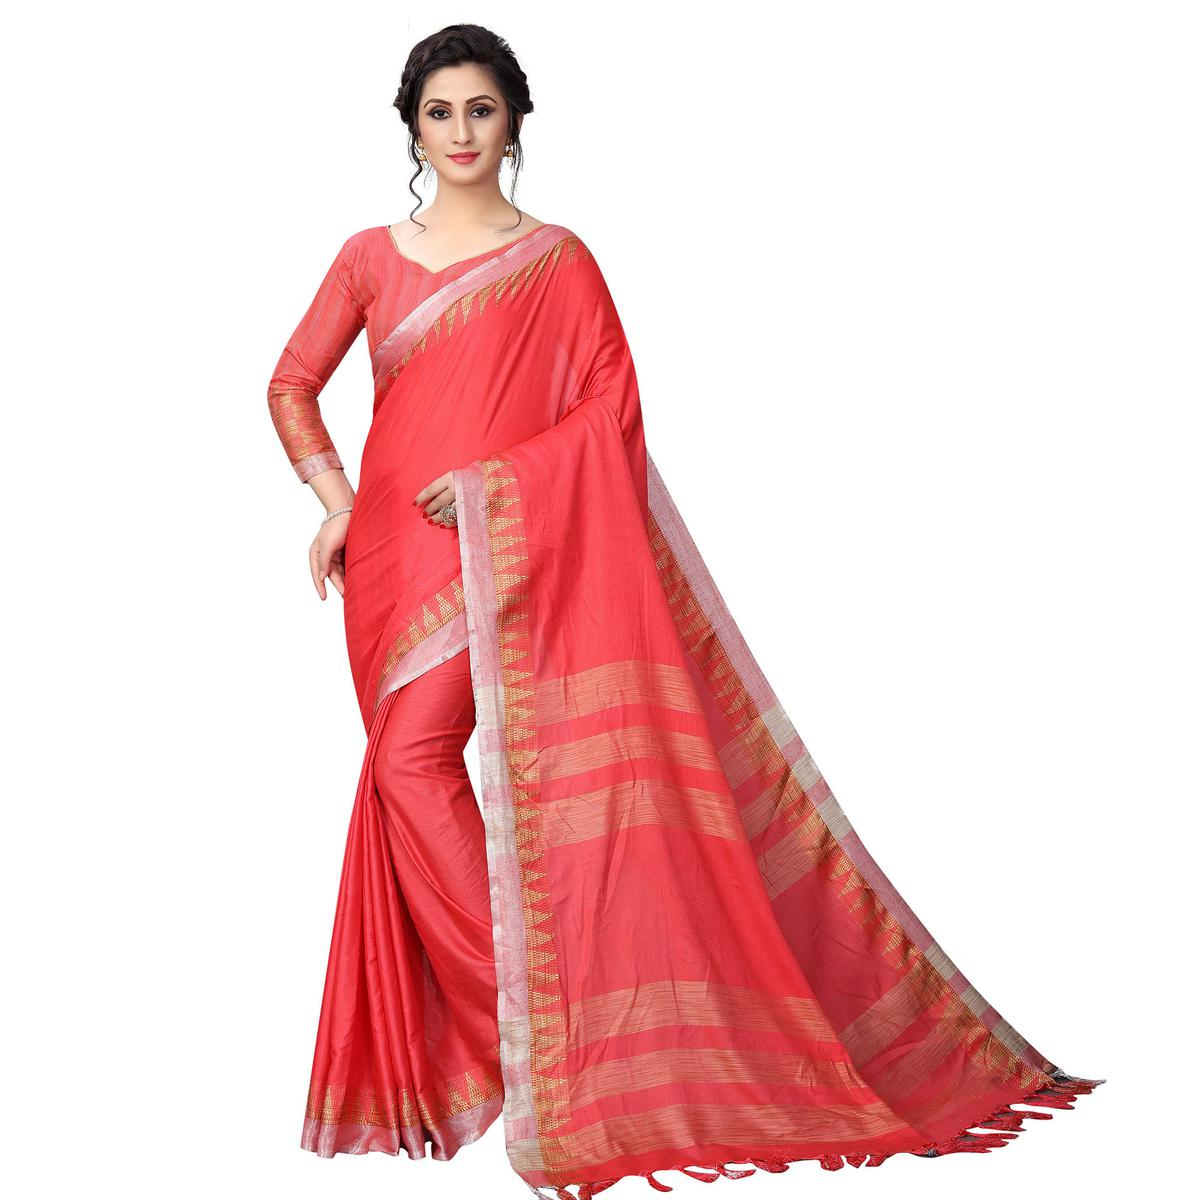 Glowing Coral Red Colored Casual Wear Cotton Linen Saree